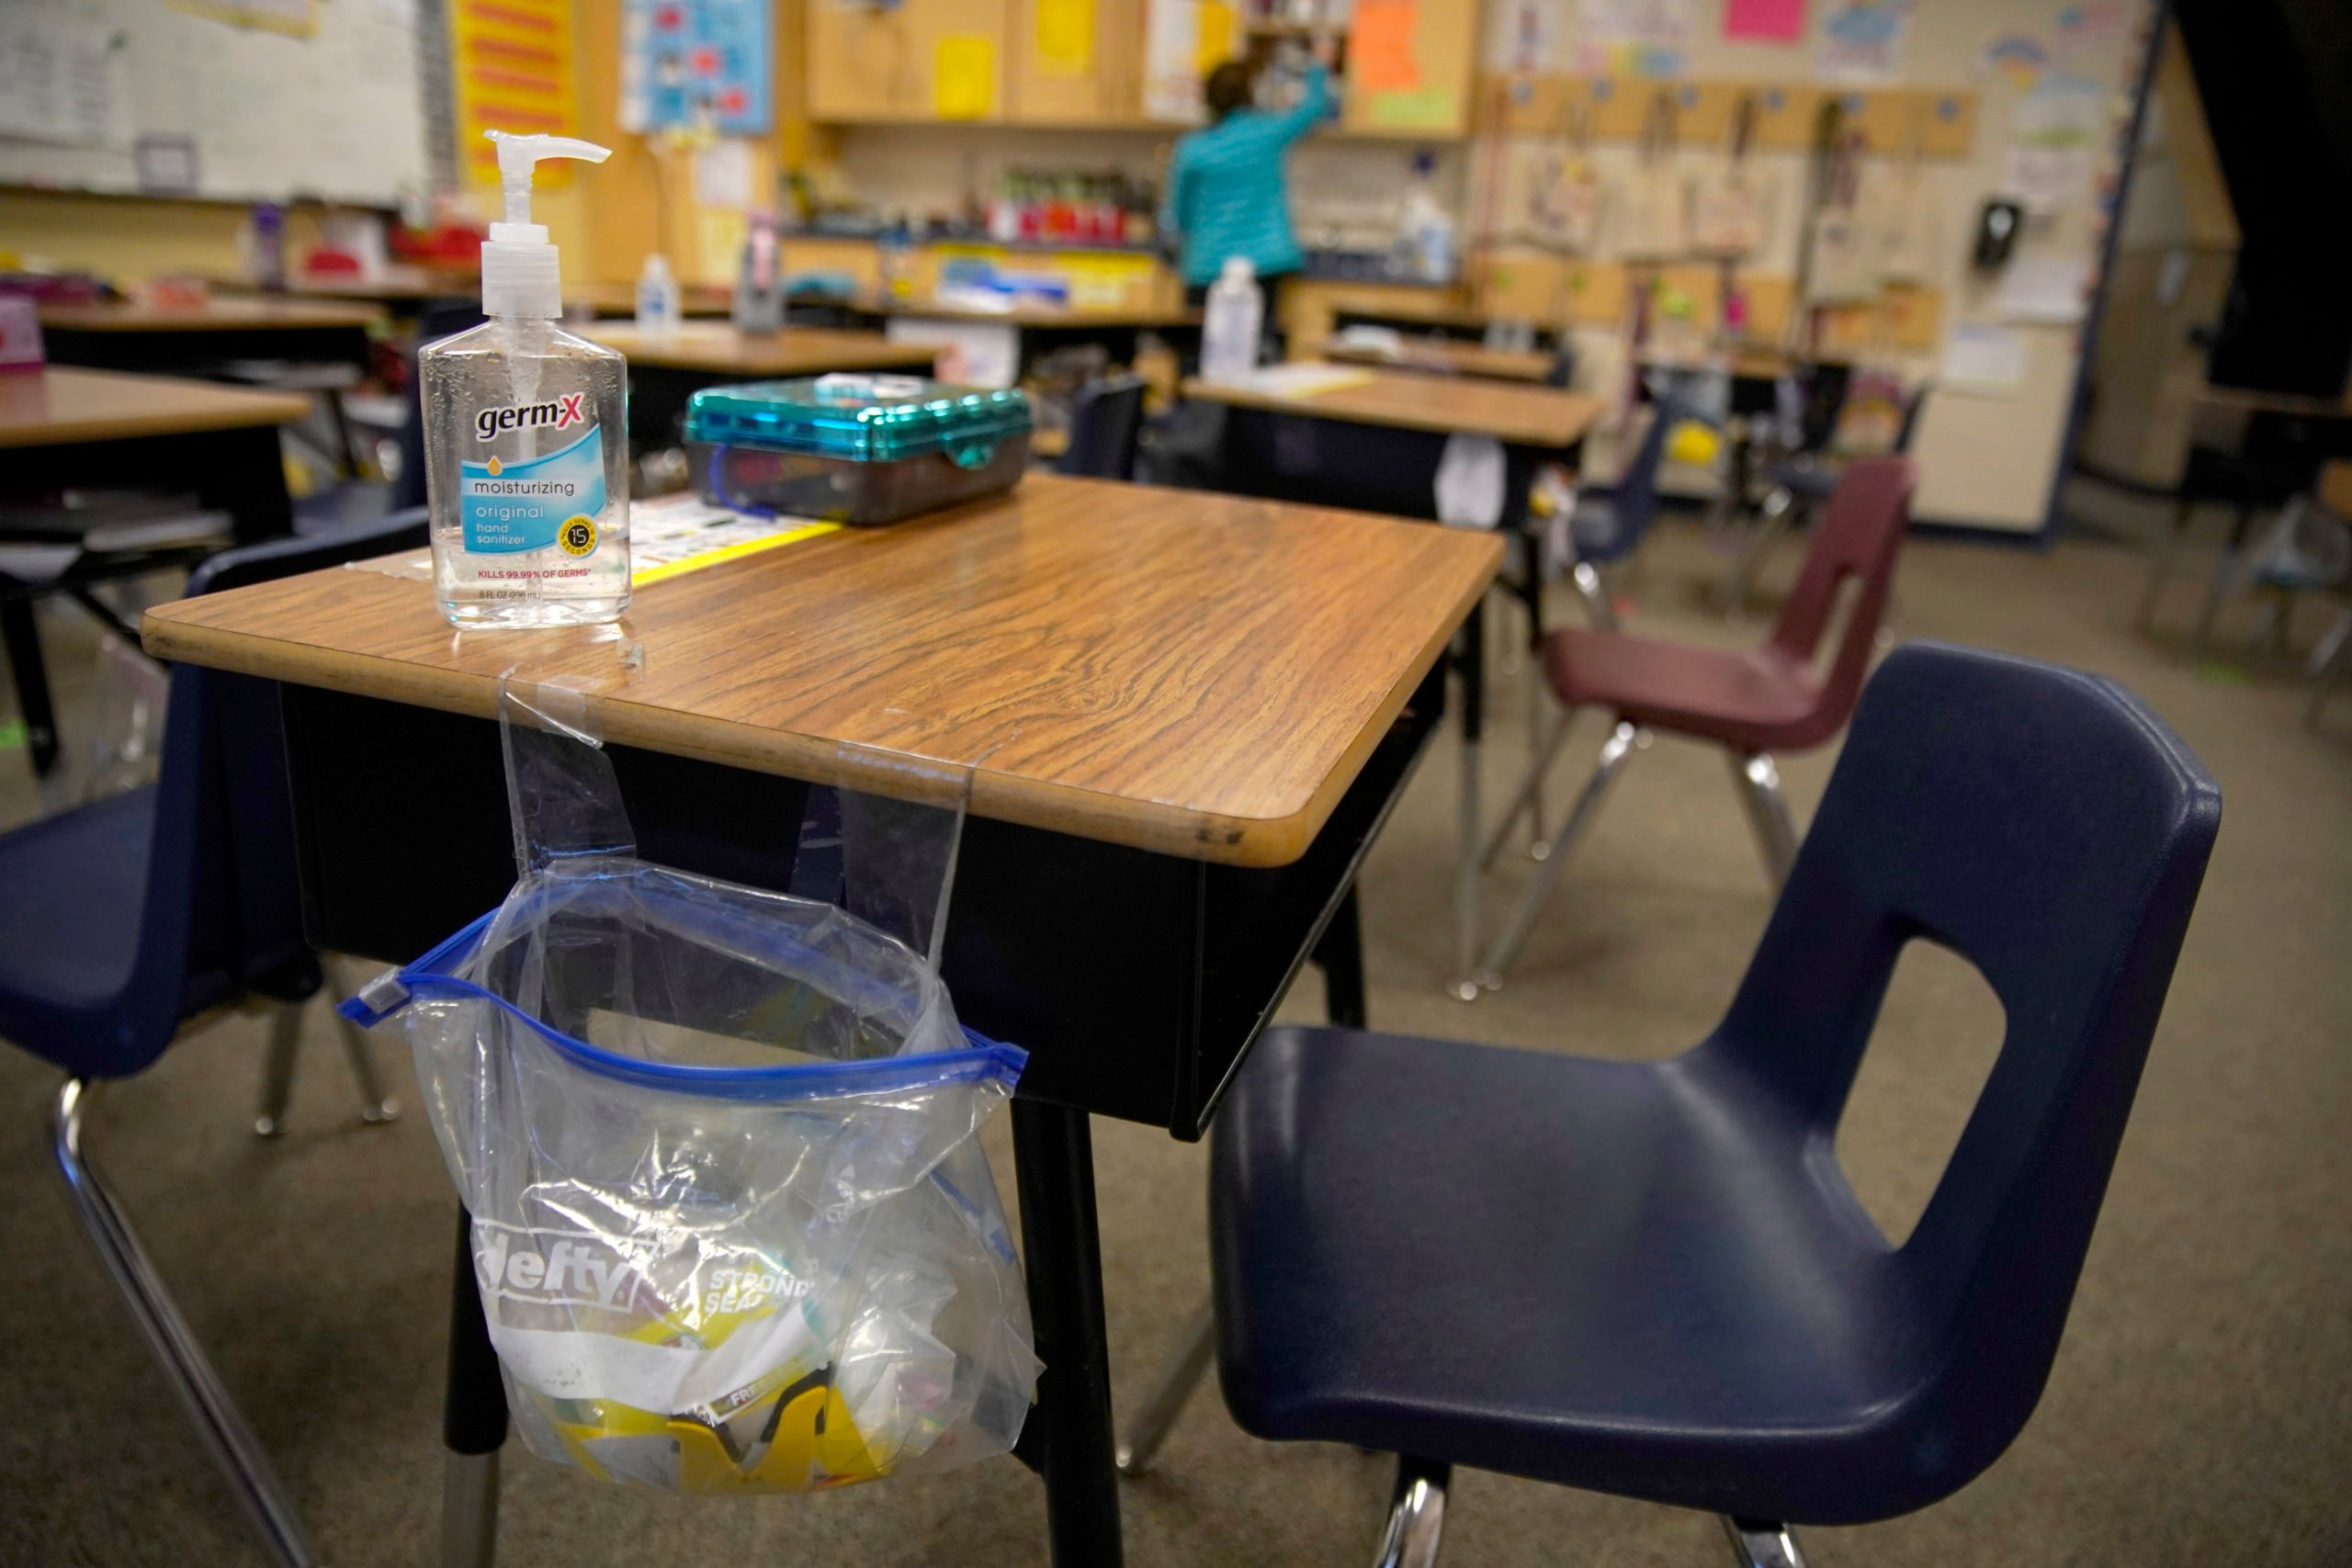 PROVO, UT - FEBRUARY 10: A teacher prepares her classroom before students arrive for school at Freedom Preparatory Academy on February 10, 2021 in Provo, Utah. Freedom Academy has done in person instruction since the middle of August of 2020 with only four days of school canceled due to COVID-19 outbreak. (Photo by George Frey/Getty Images)